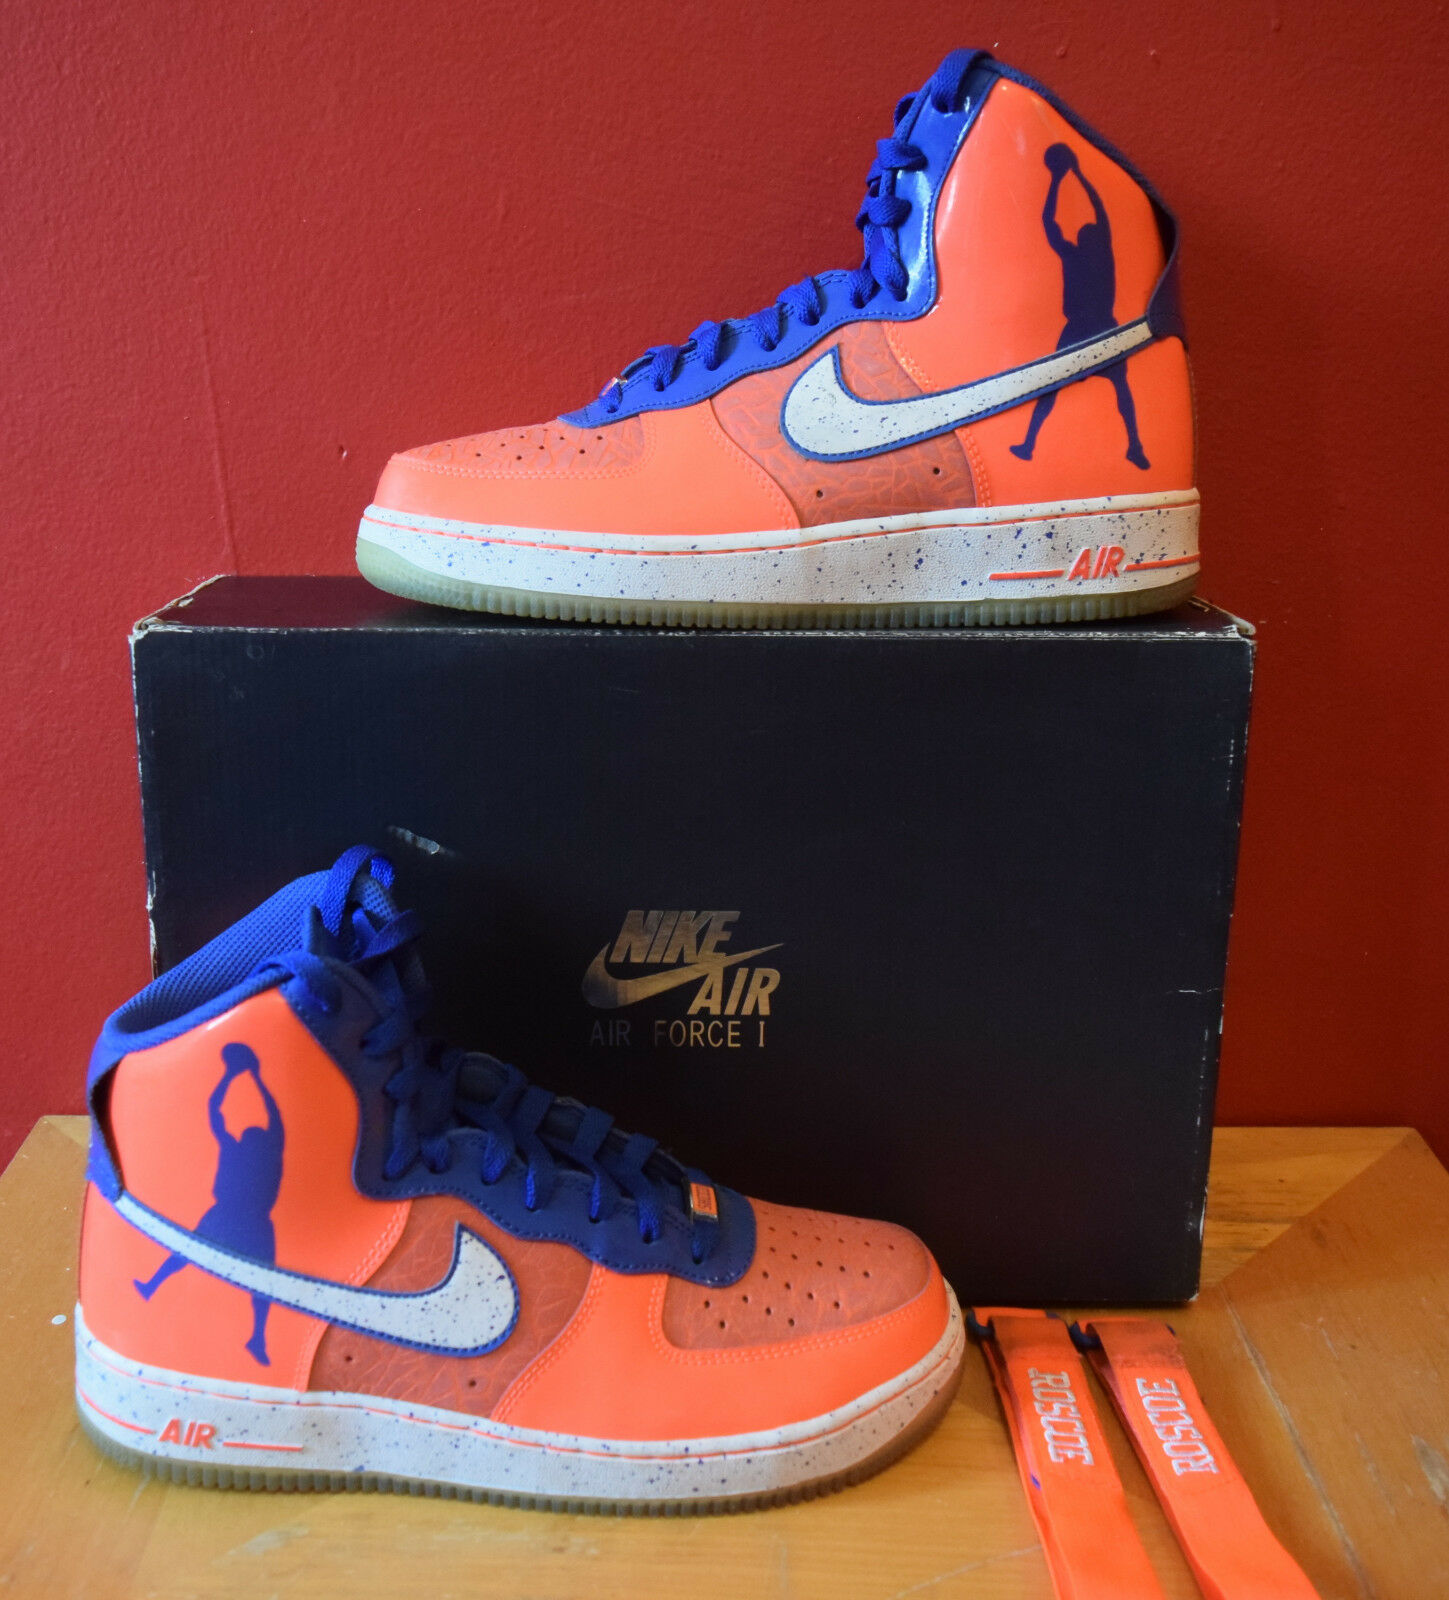 Nike Air Force 1 Hi CMFT PRM Sz 8.5 Sheed Rasheed Wallace Knicks NY 624185 800